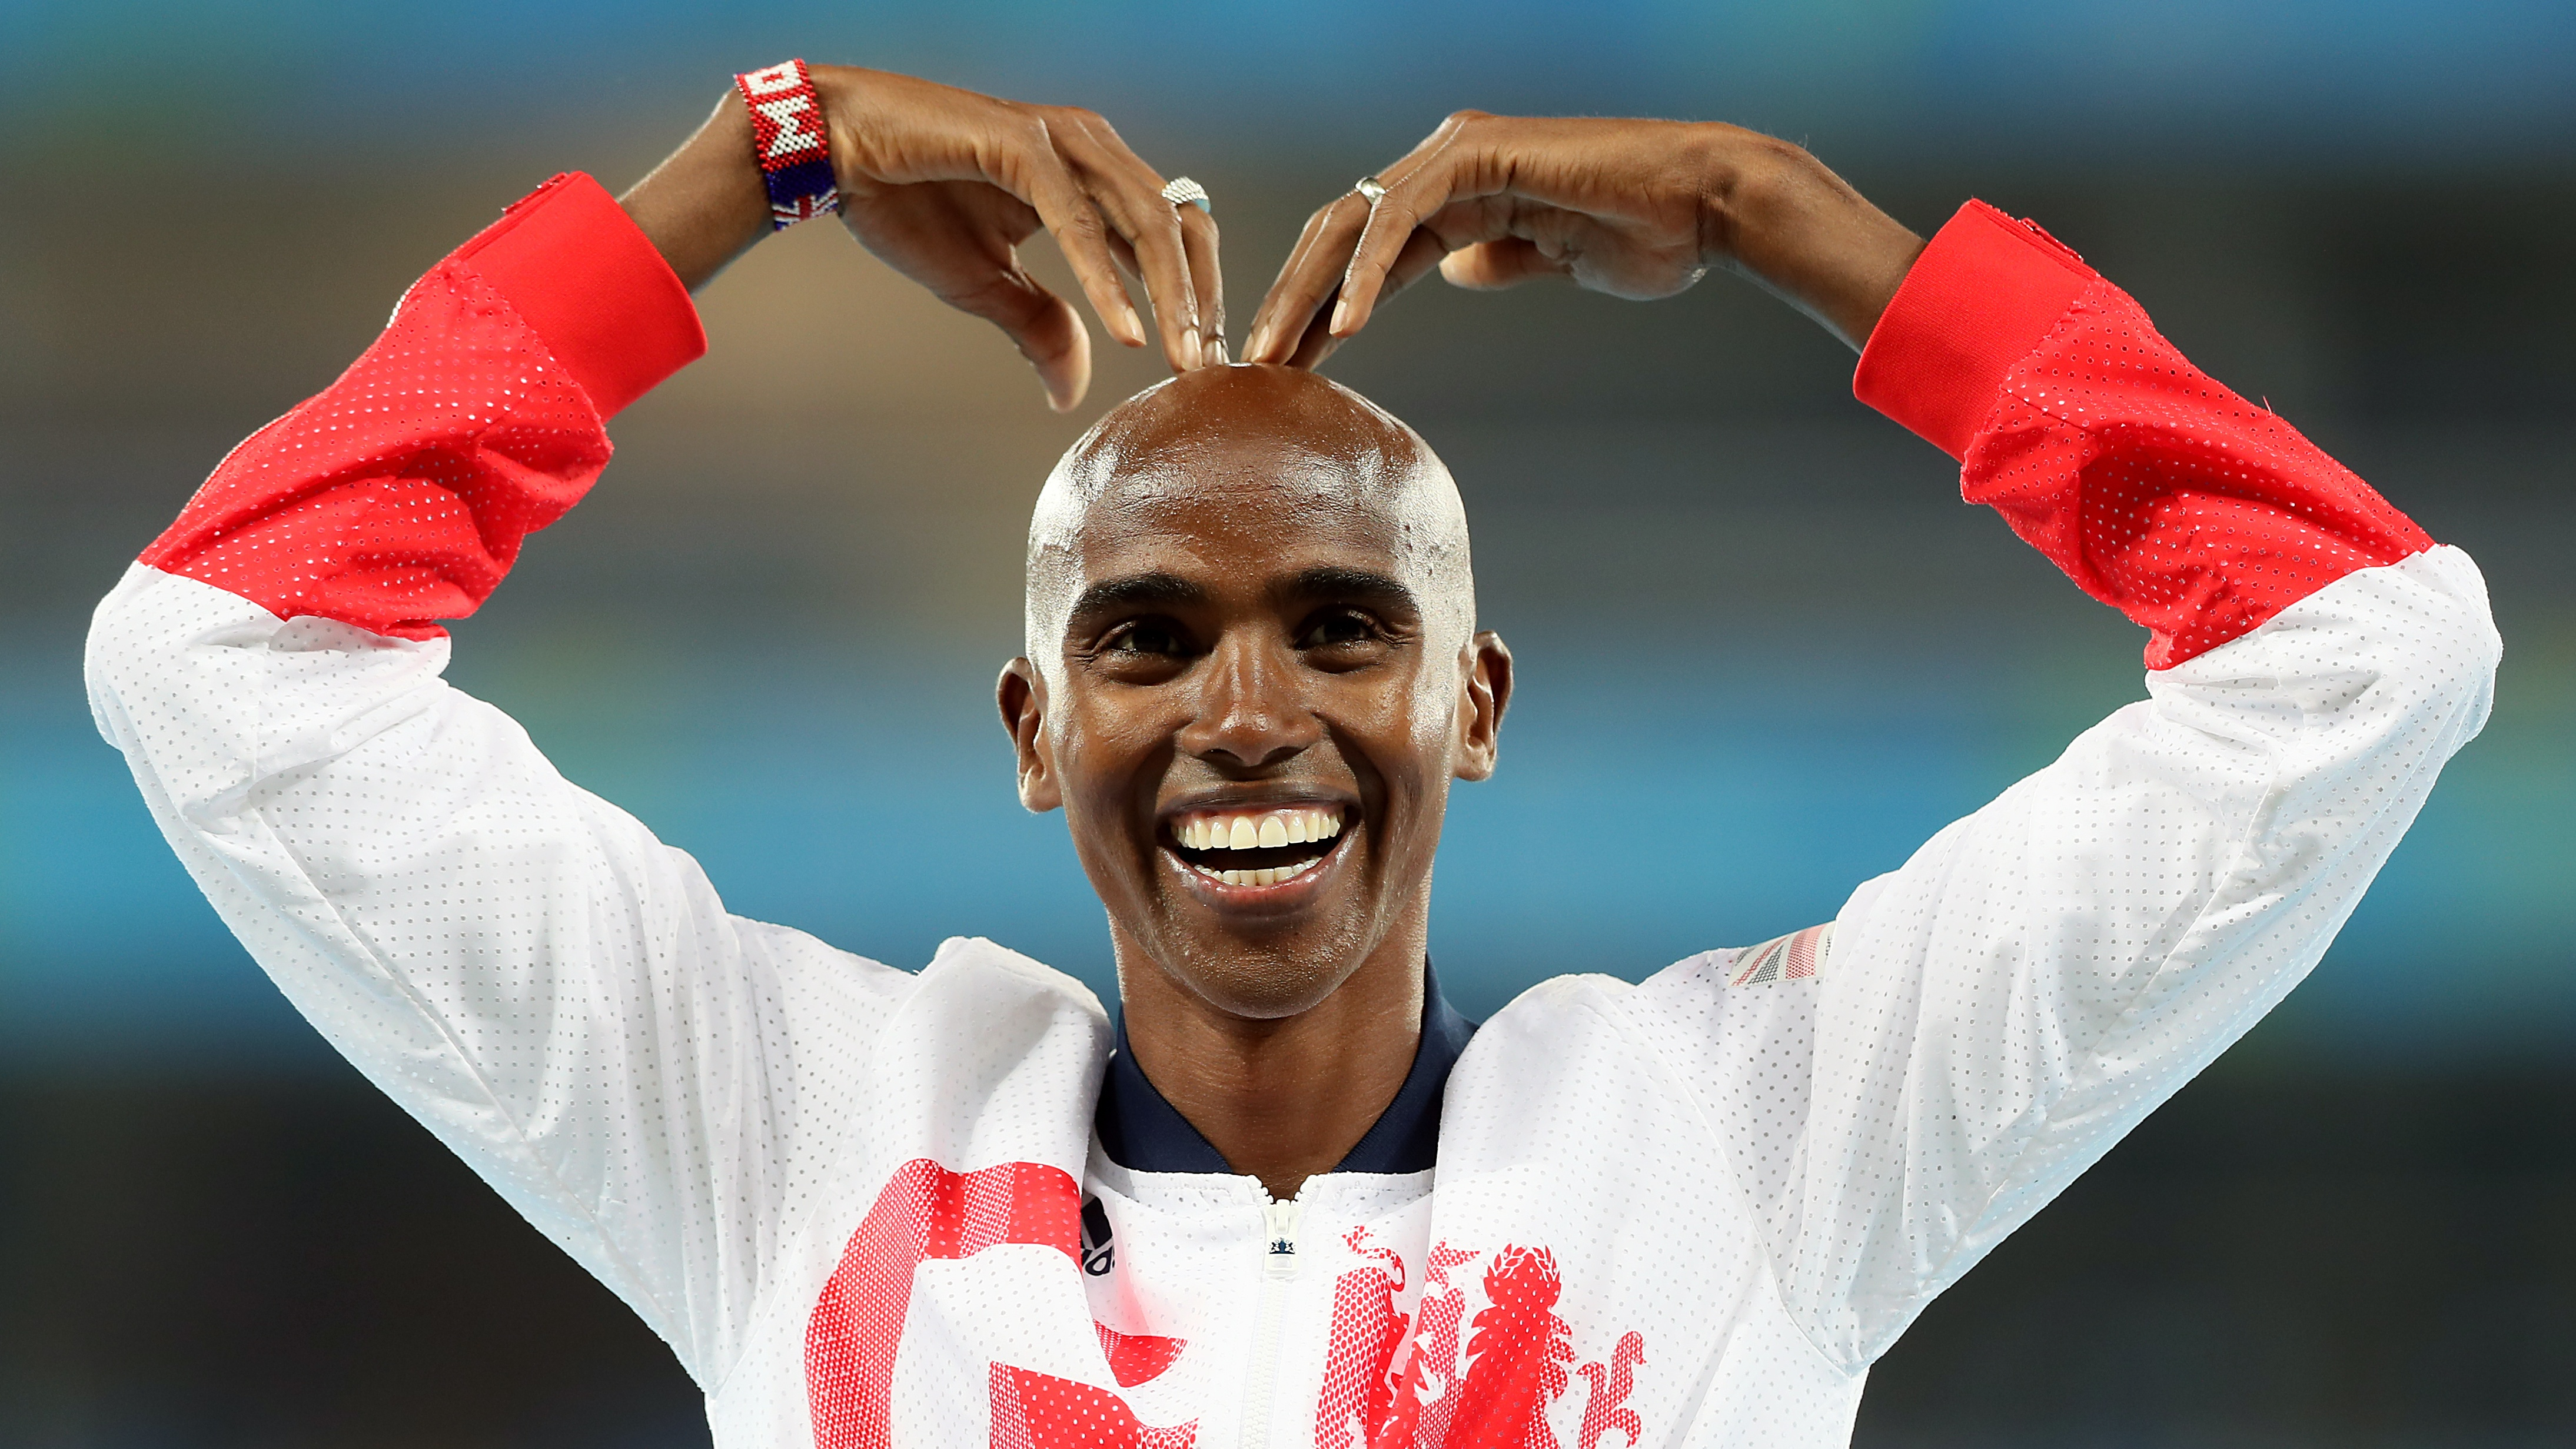 Mo Farah performs the Mobot at the 2016 Rio Olympics